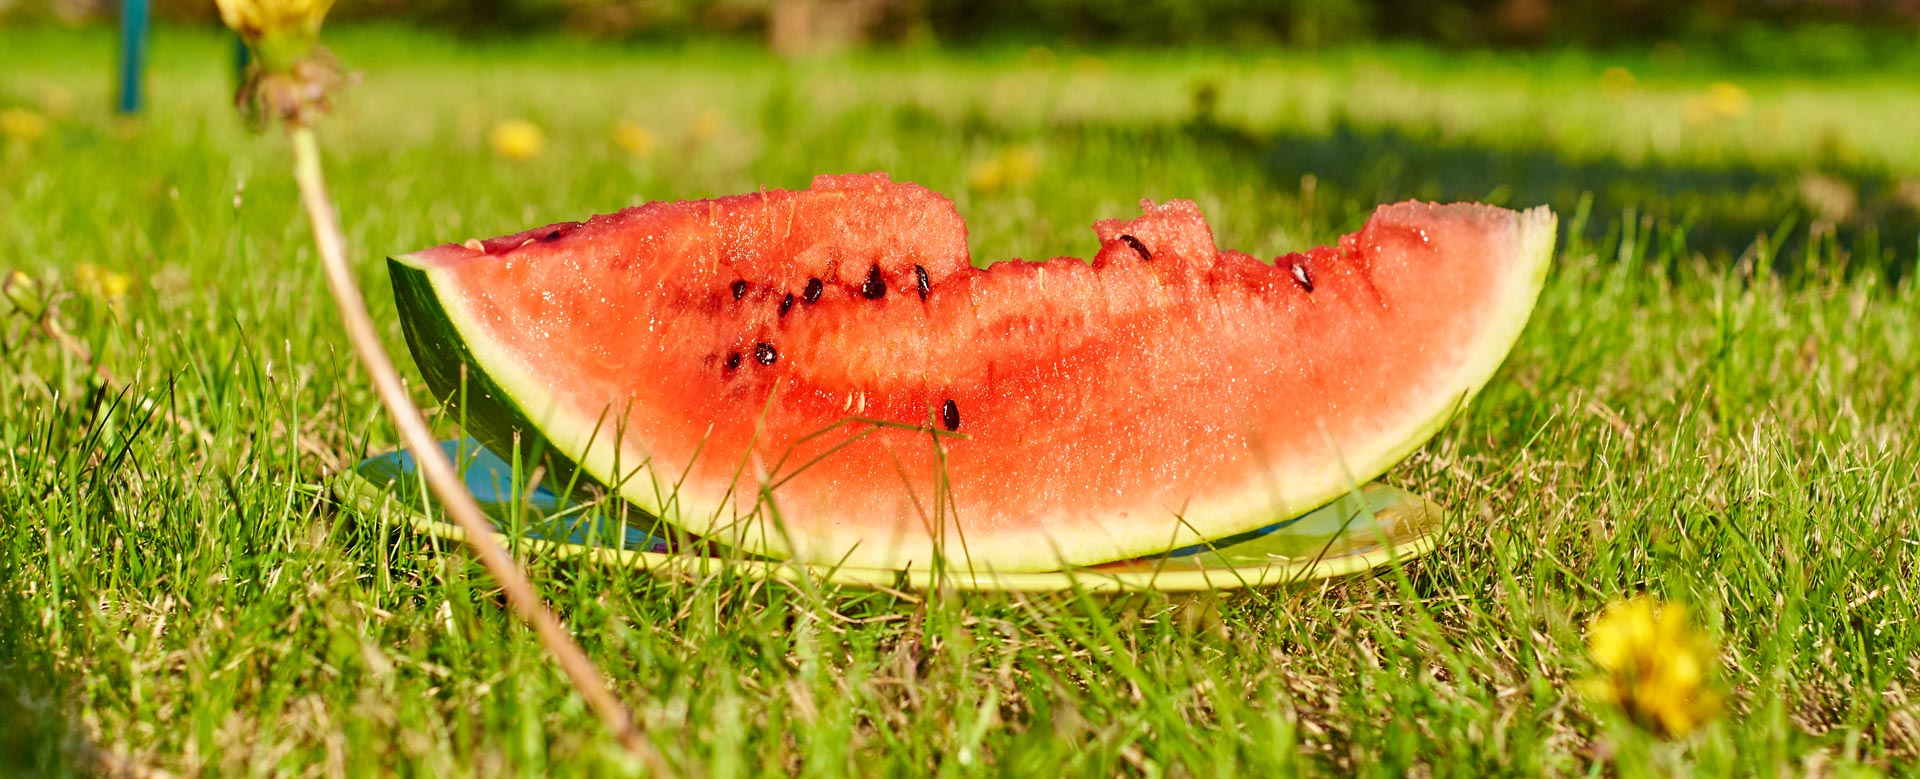 keeping-cool-in-the-shade-eating-cold-foods